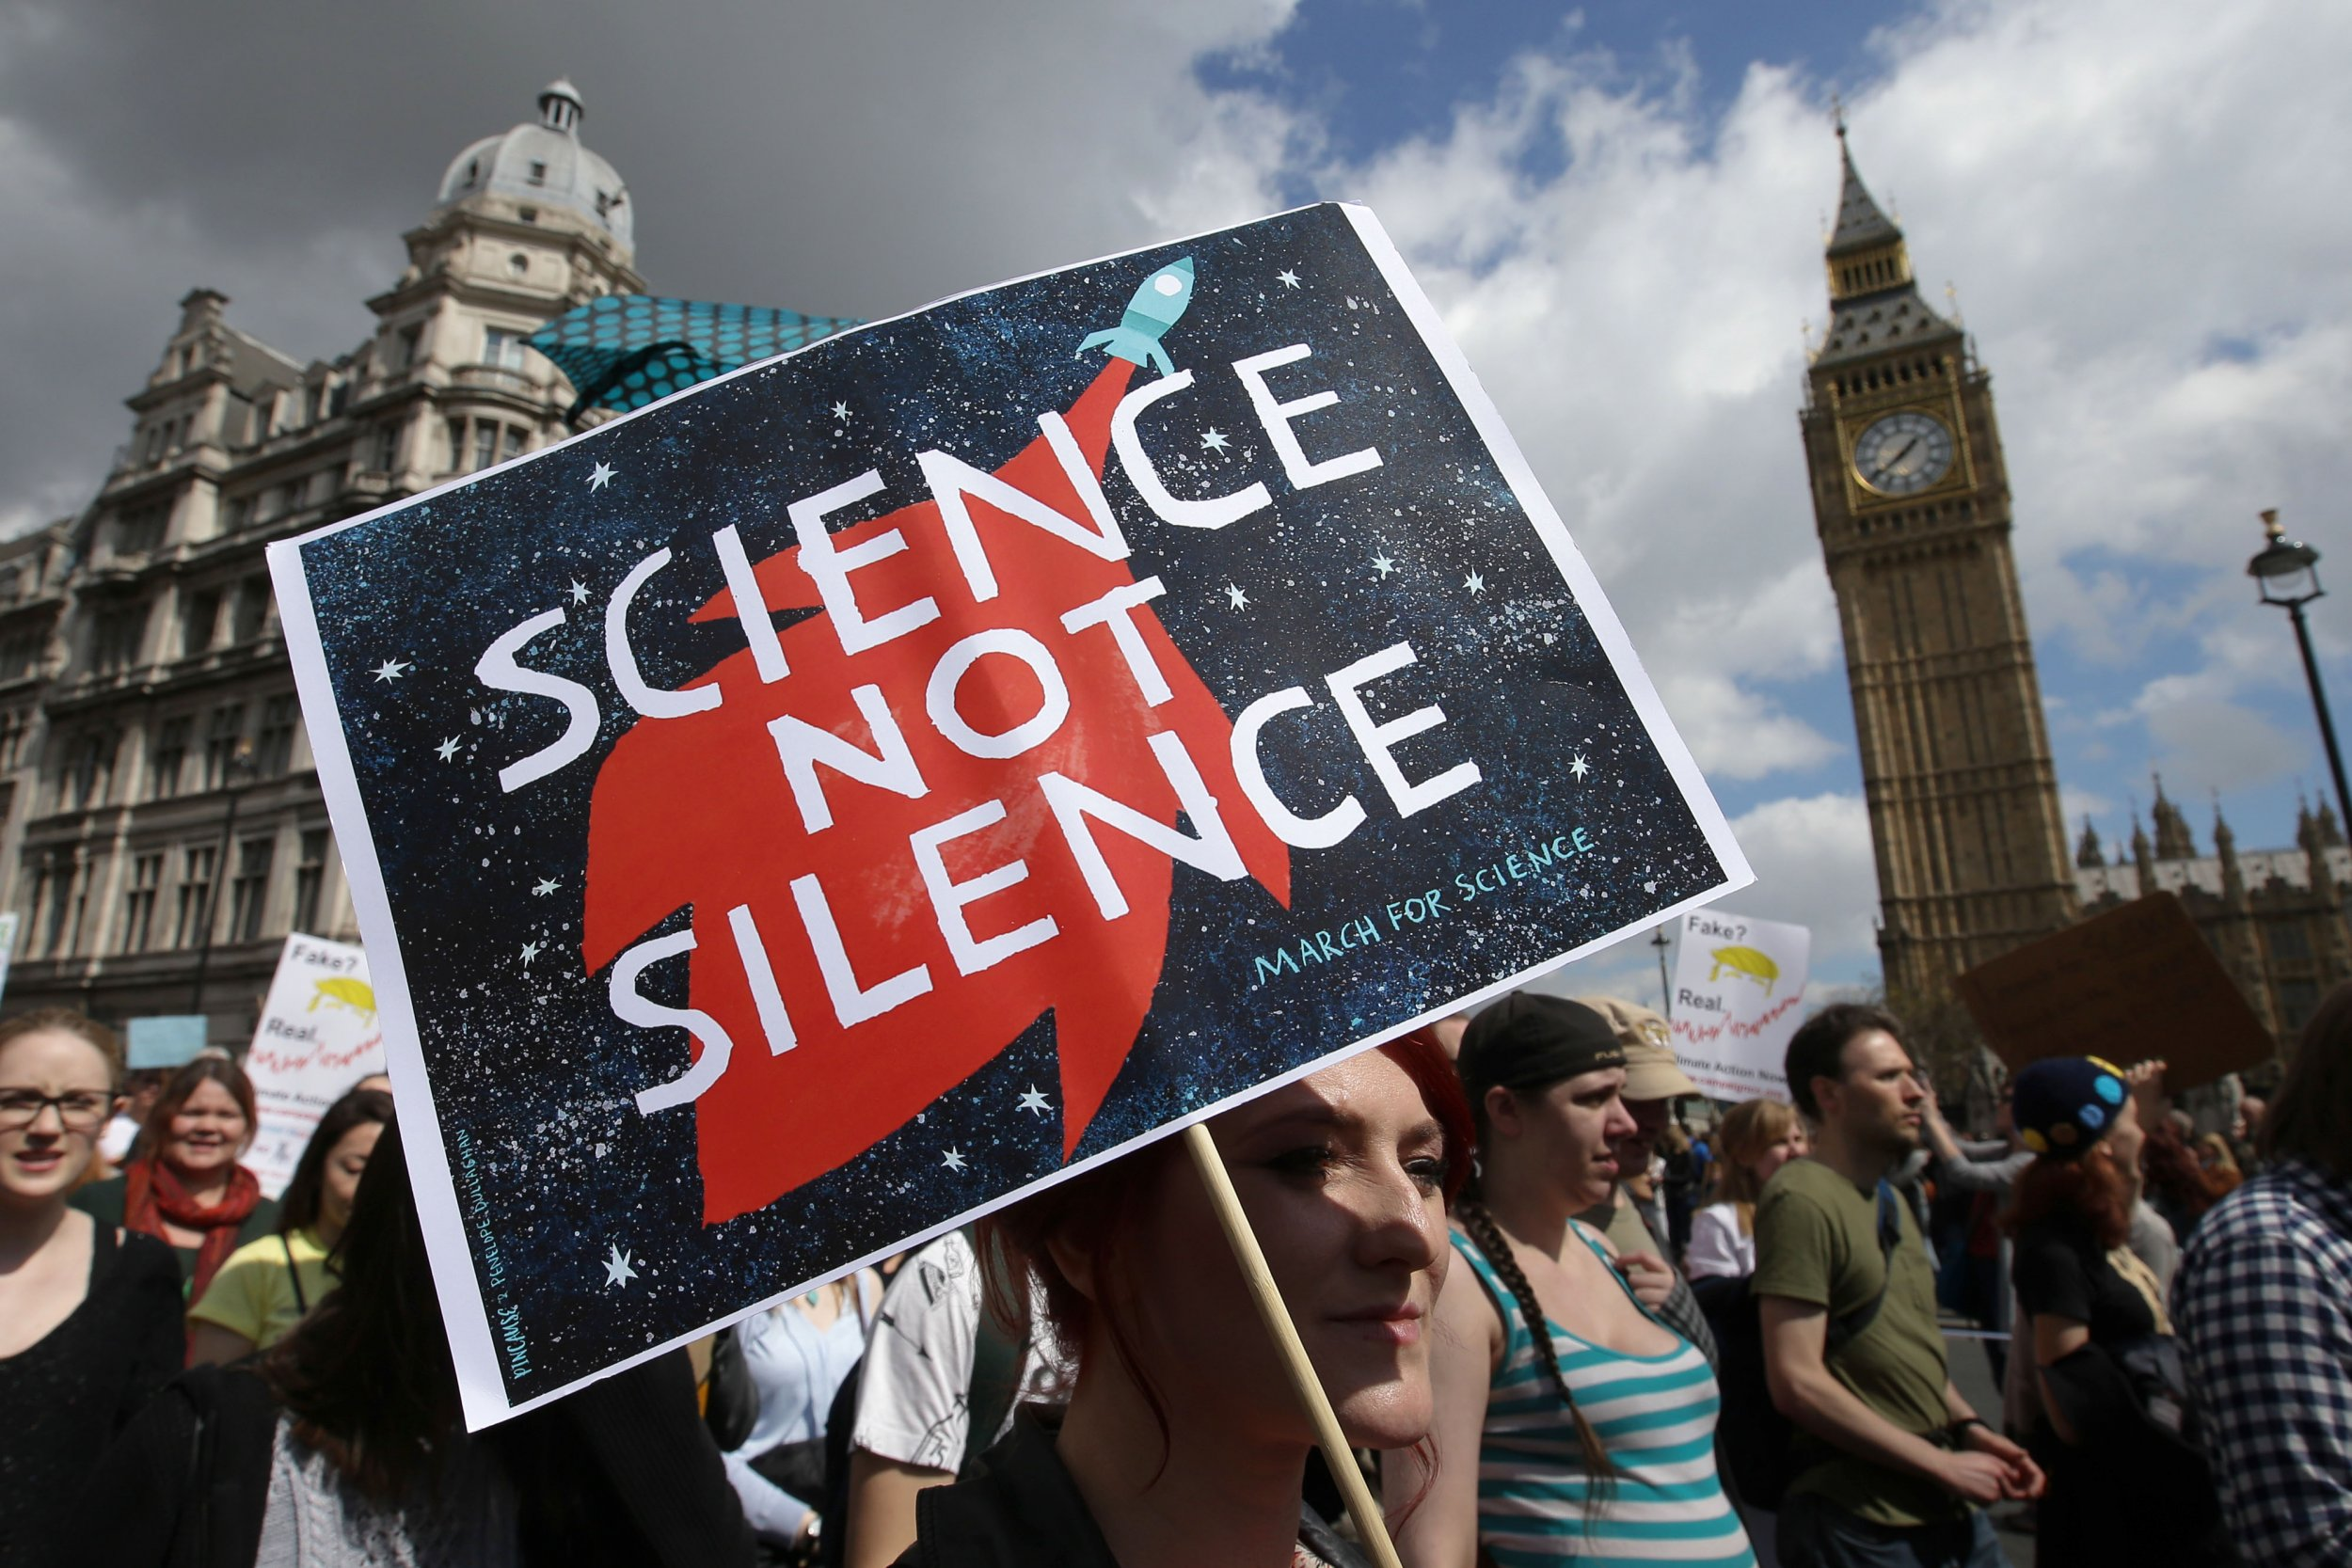 One year after the March for Science, dozens of scientists are running for state and local offices